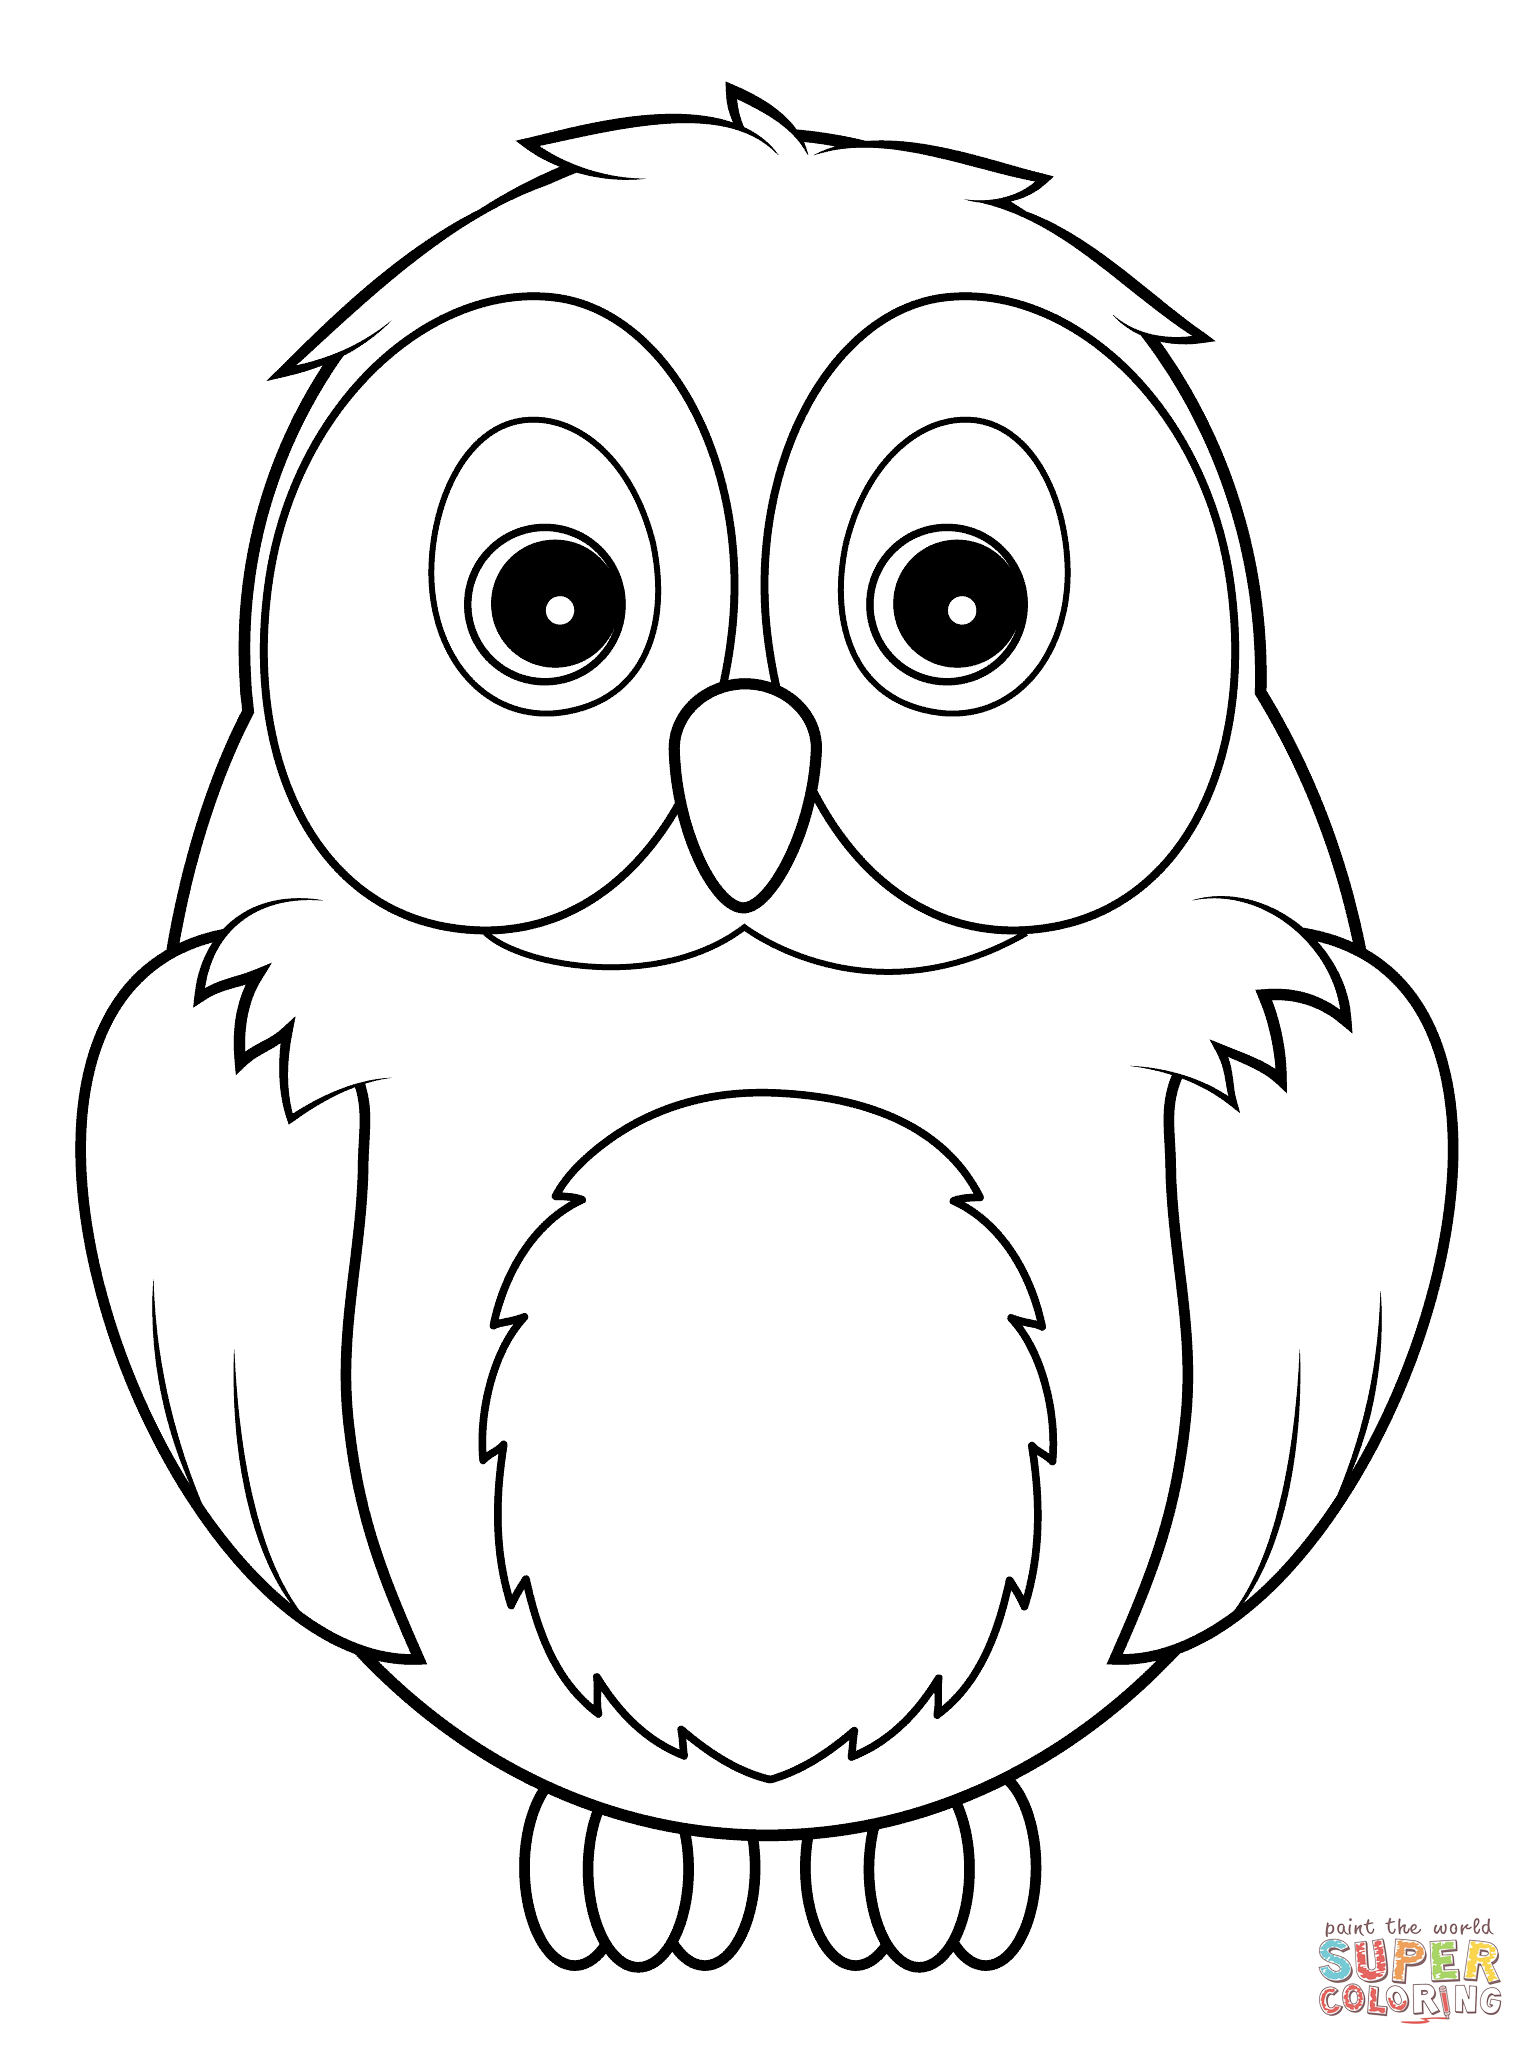 How To Draw A Cute Snowy Owl For Kids